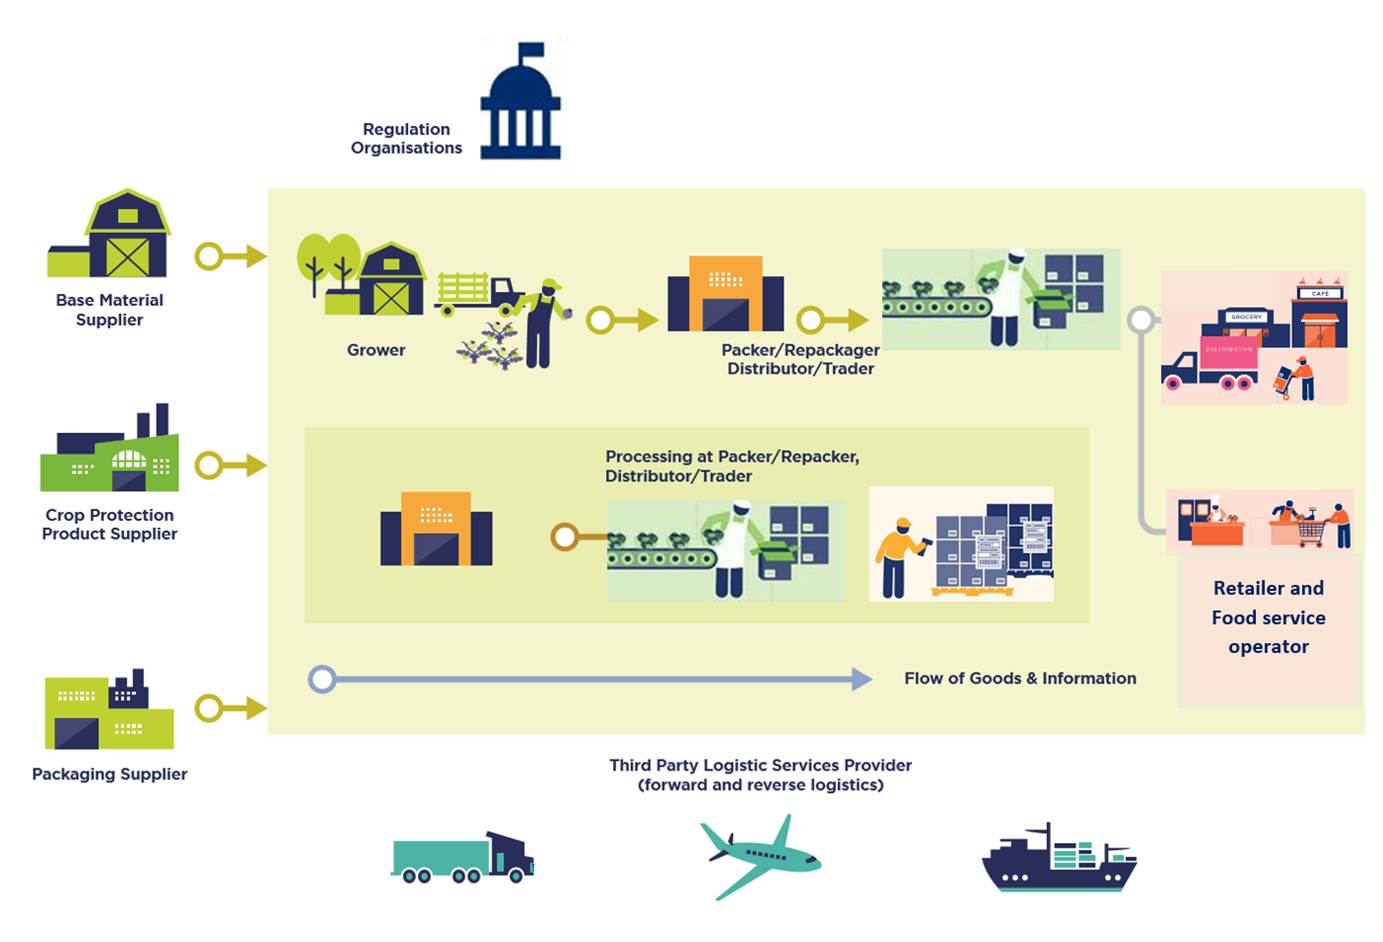 2.1 Supply chain overview - Image 1